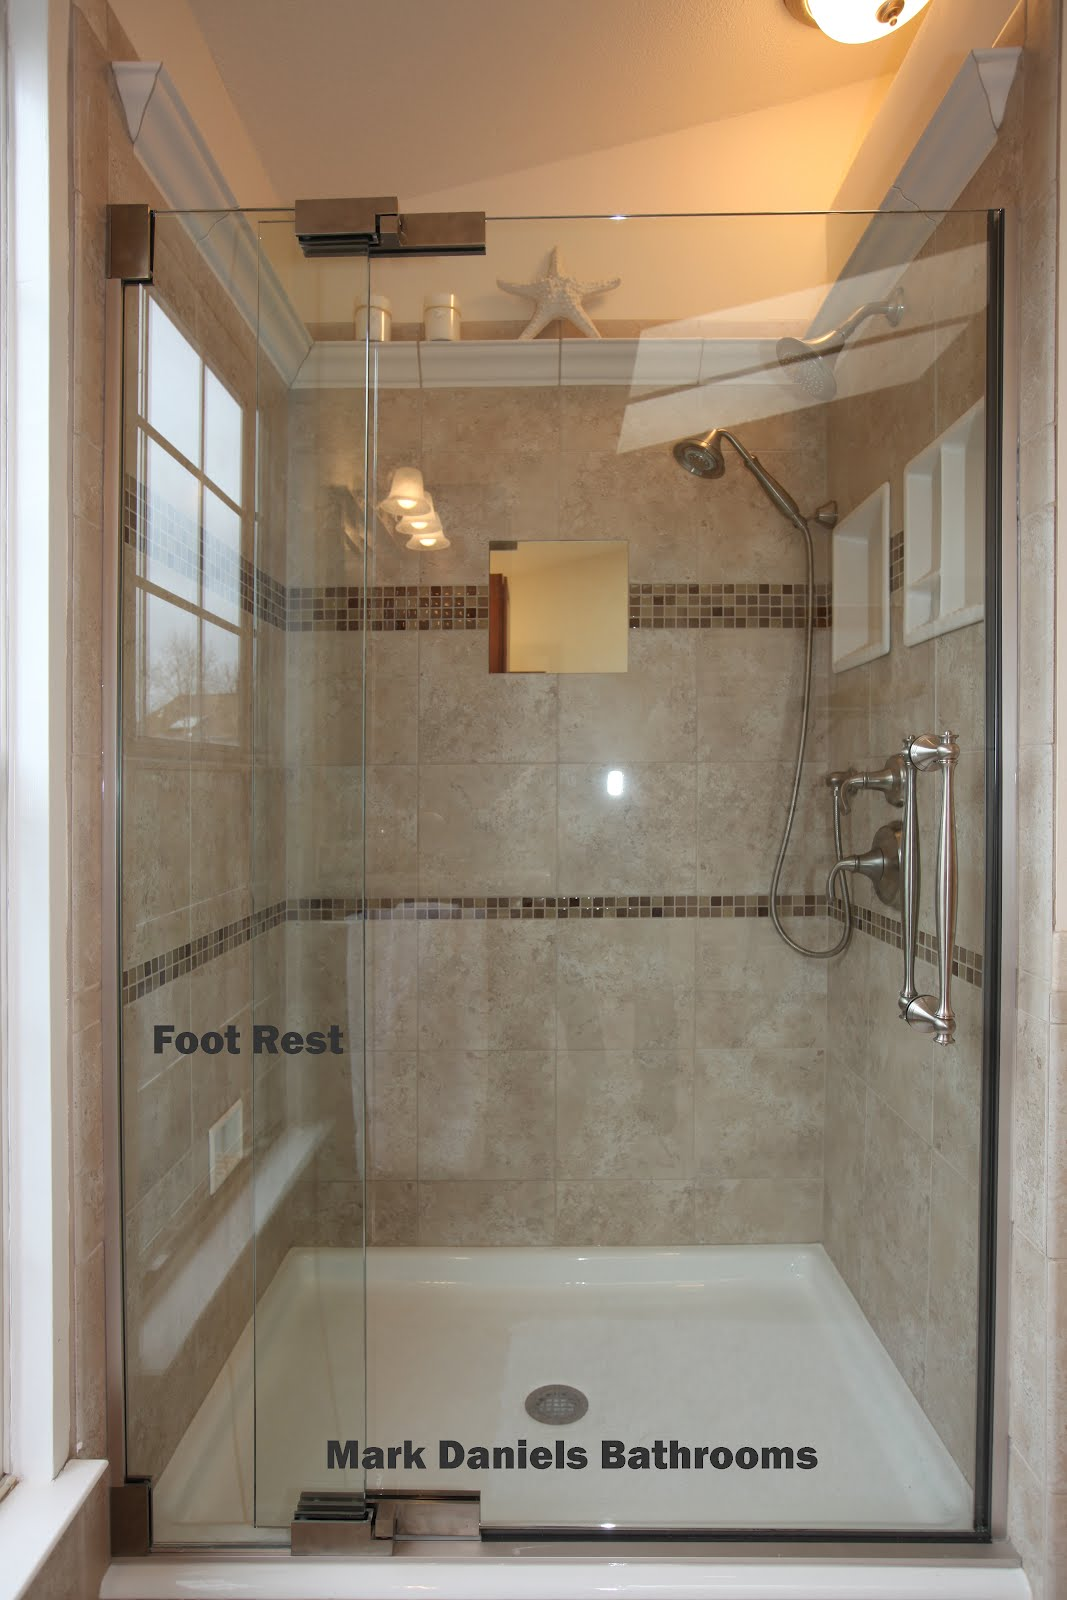 Bathroom remodeling design ideas tile shower niches shower shaving foot rests Shower tile layout